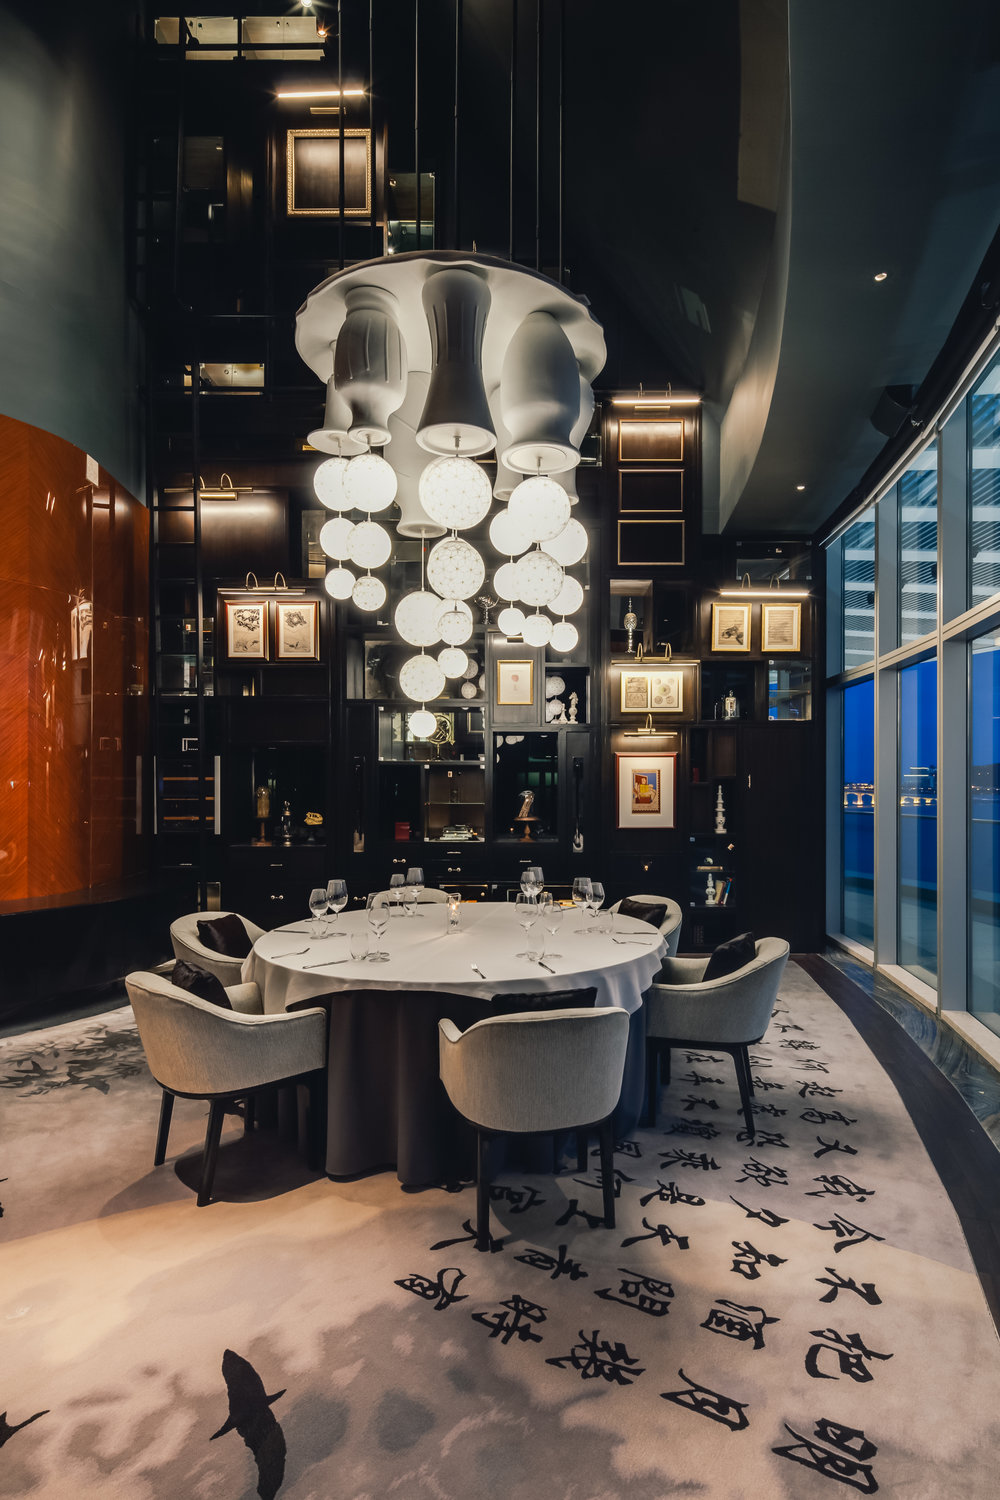 The carpet in the small private dining room features Chinese poet Su Shi's  Mid-Autumn Moon.  In fact, the poem is angled in such a way that guides one's eye out over the Macau skyline.